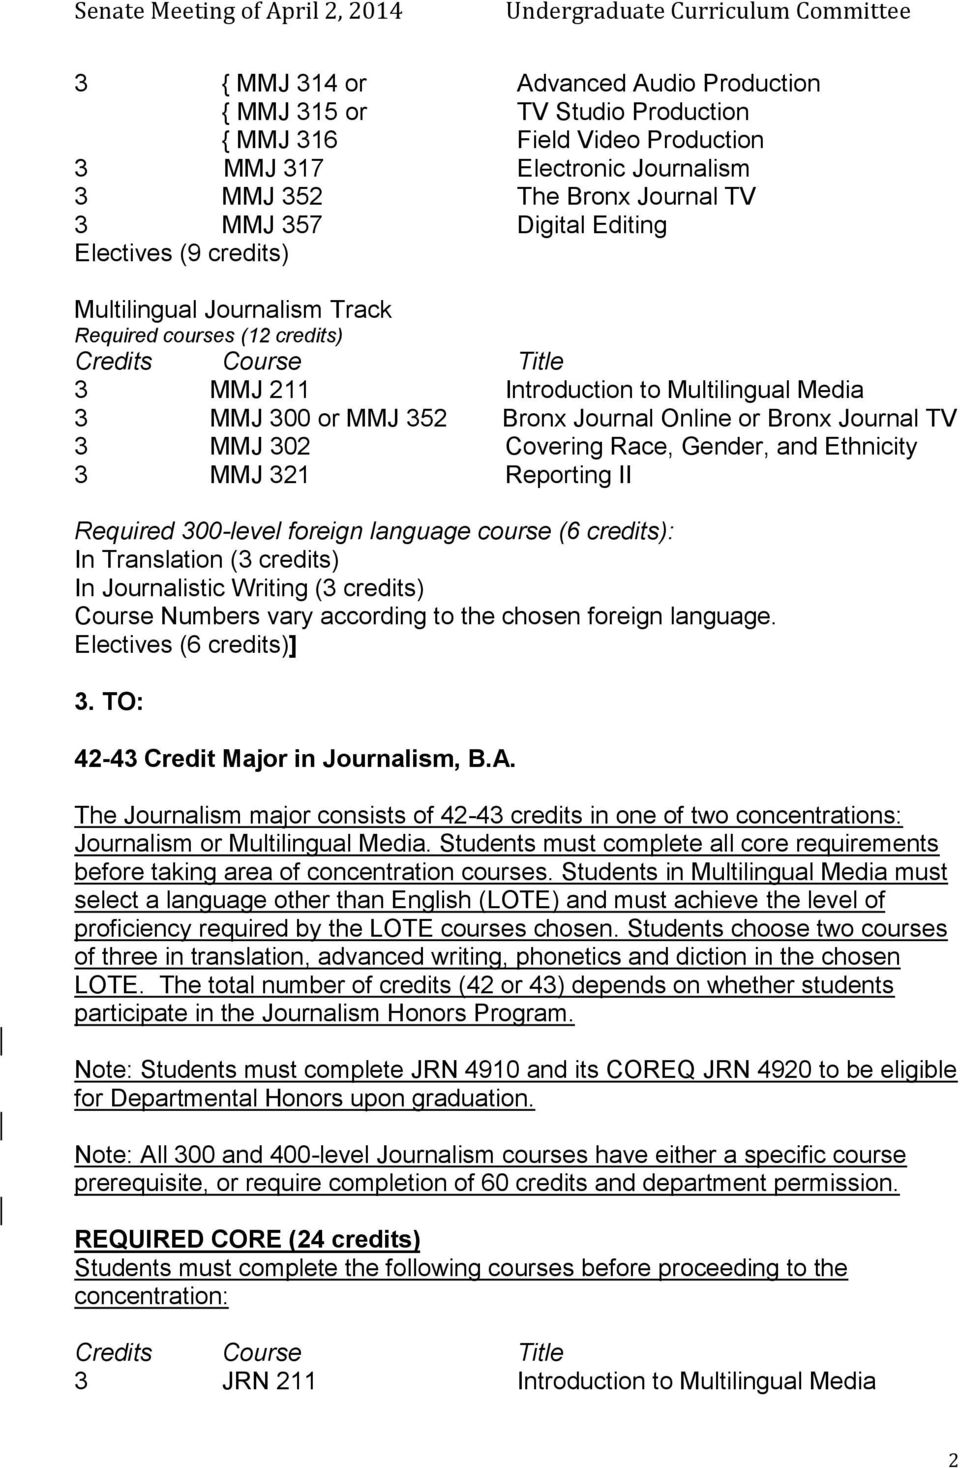 Journal TV 3 MMJ 302 Covering Race, Gender, and Ethnicity 3 MMJ 321 Reporting II Required 300-level foreign language (6 credits): In Translation (3 credits) In Journalistic Writing (3 credits) Course